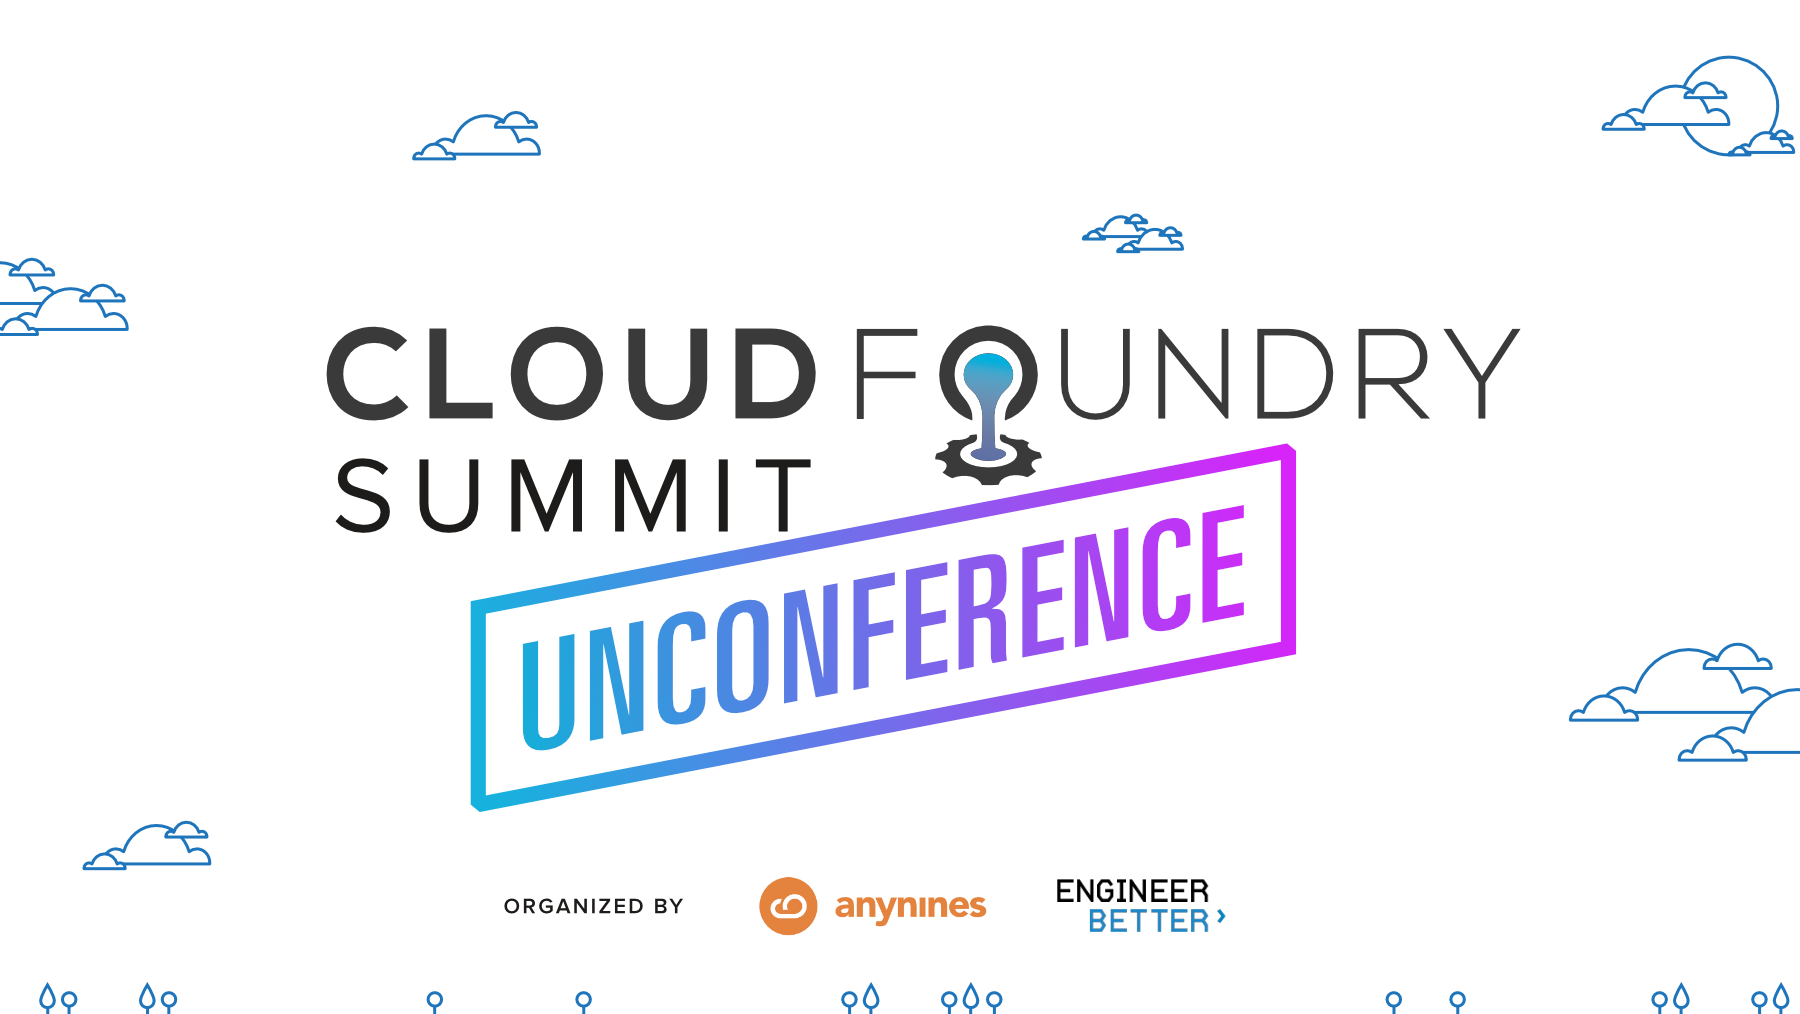 Unconference - Cloud Foundry Summit Europe & North America